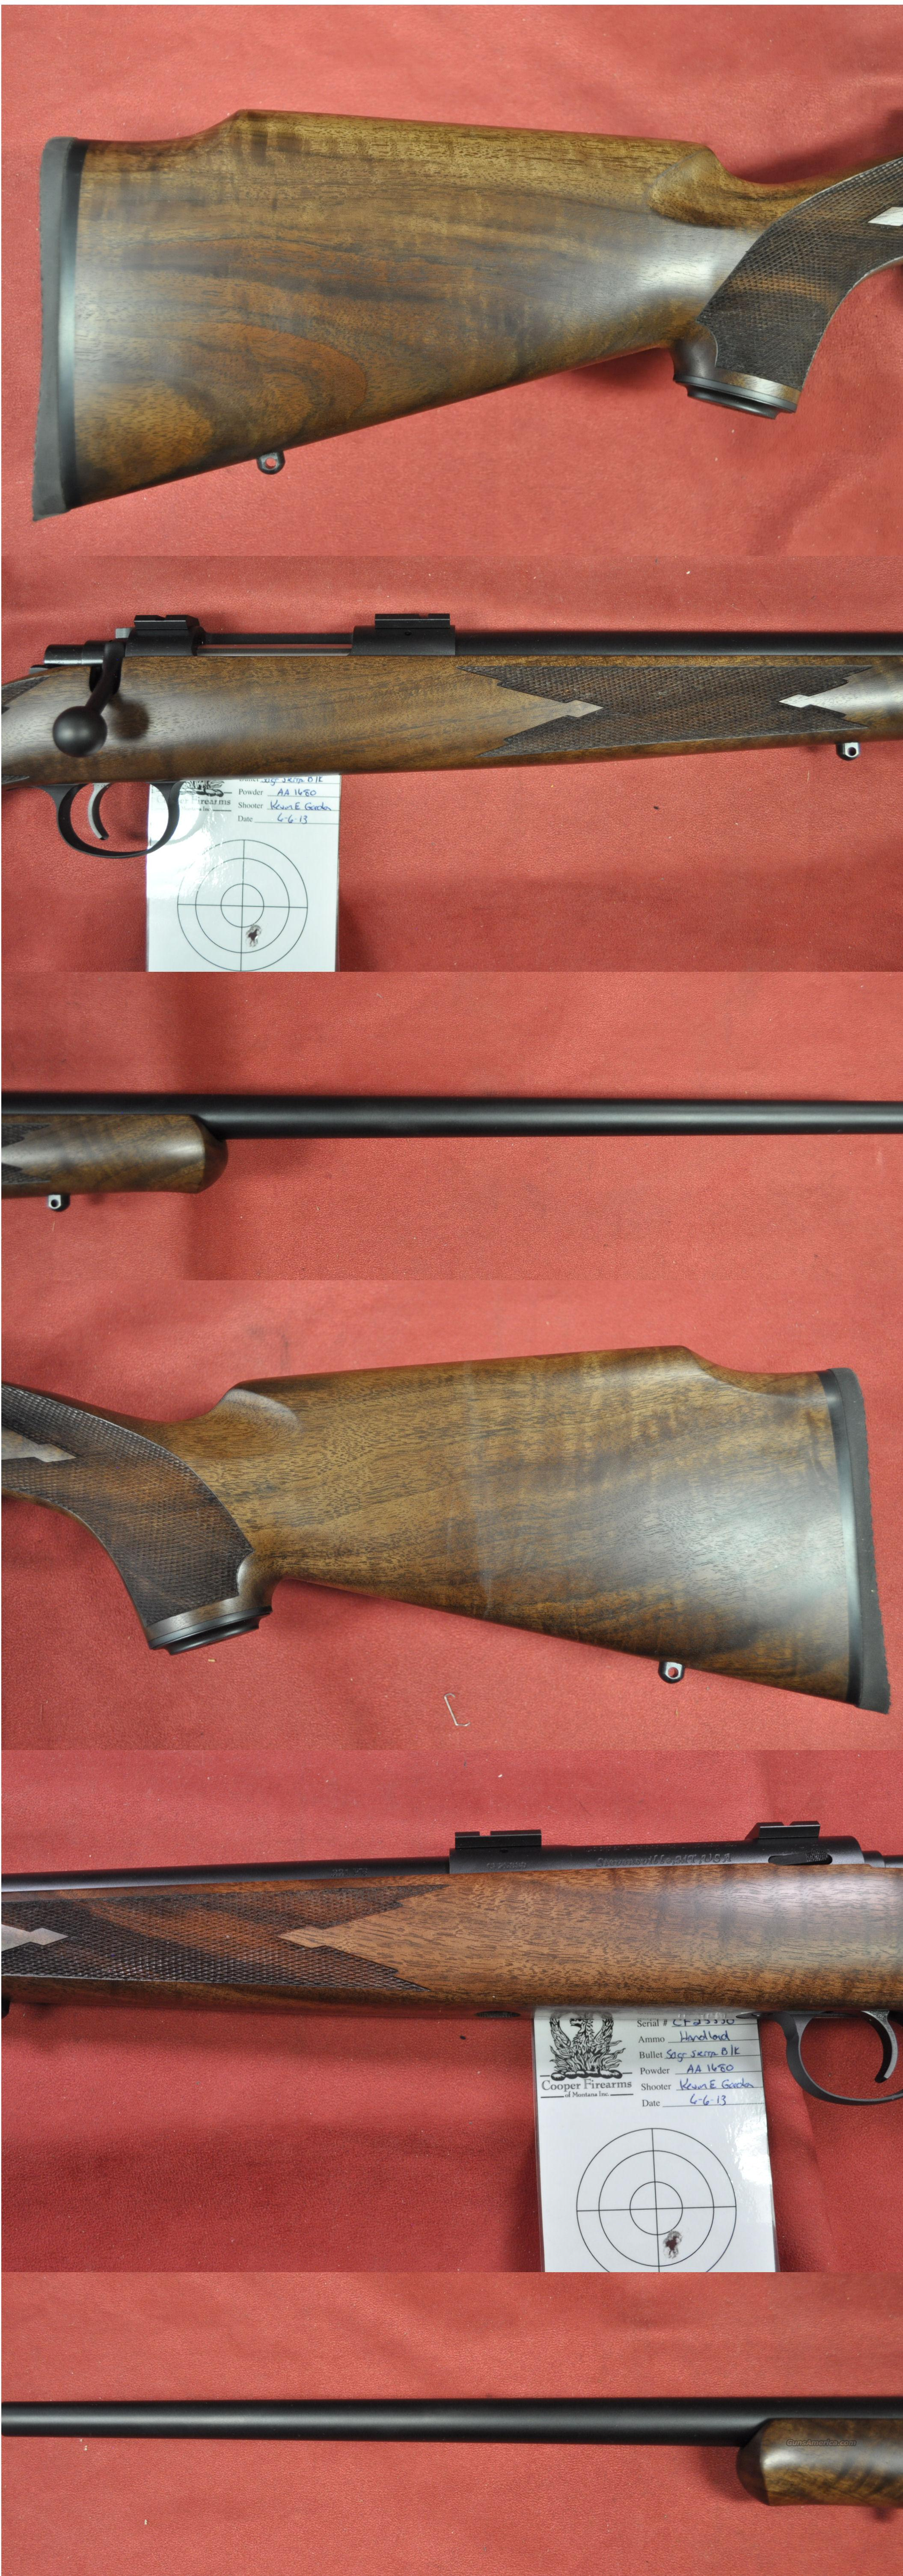 Cooper Mdl 21 Schnabel .221 FB *MUST CALL*  Guns > Rifles > Cooper Arms Rifles